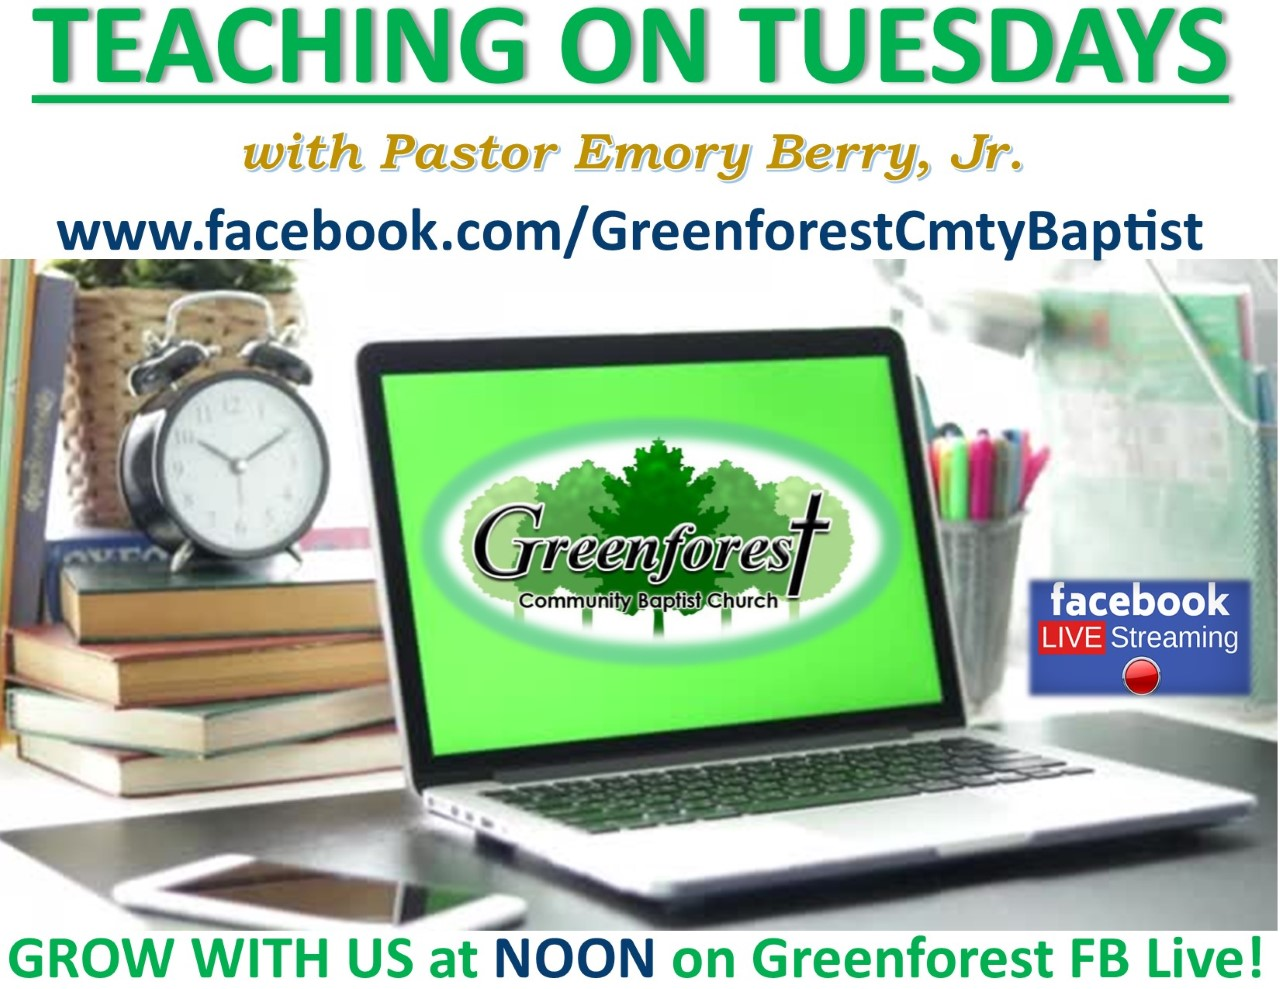 Teaching on Tuesday with Pastor Berry